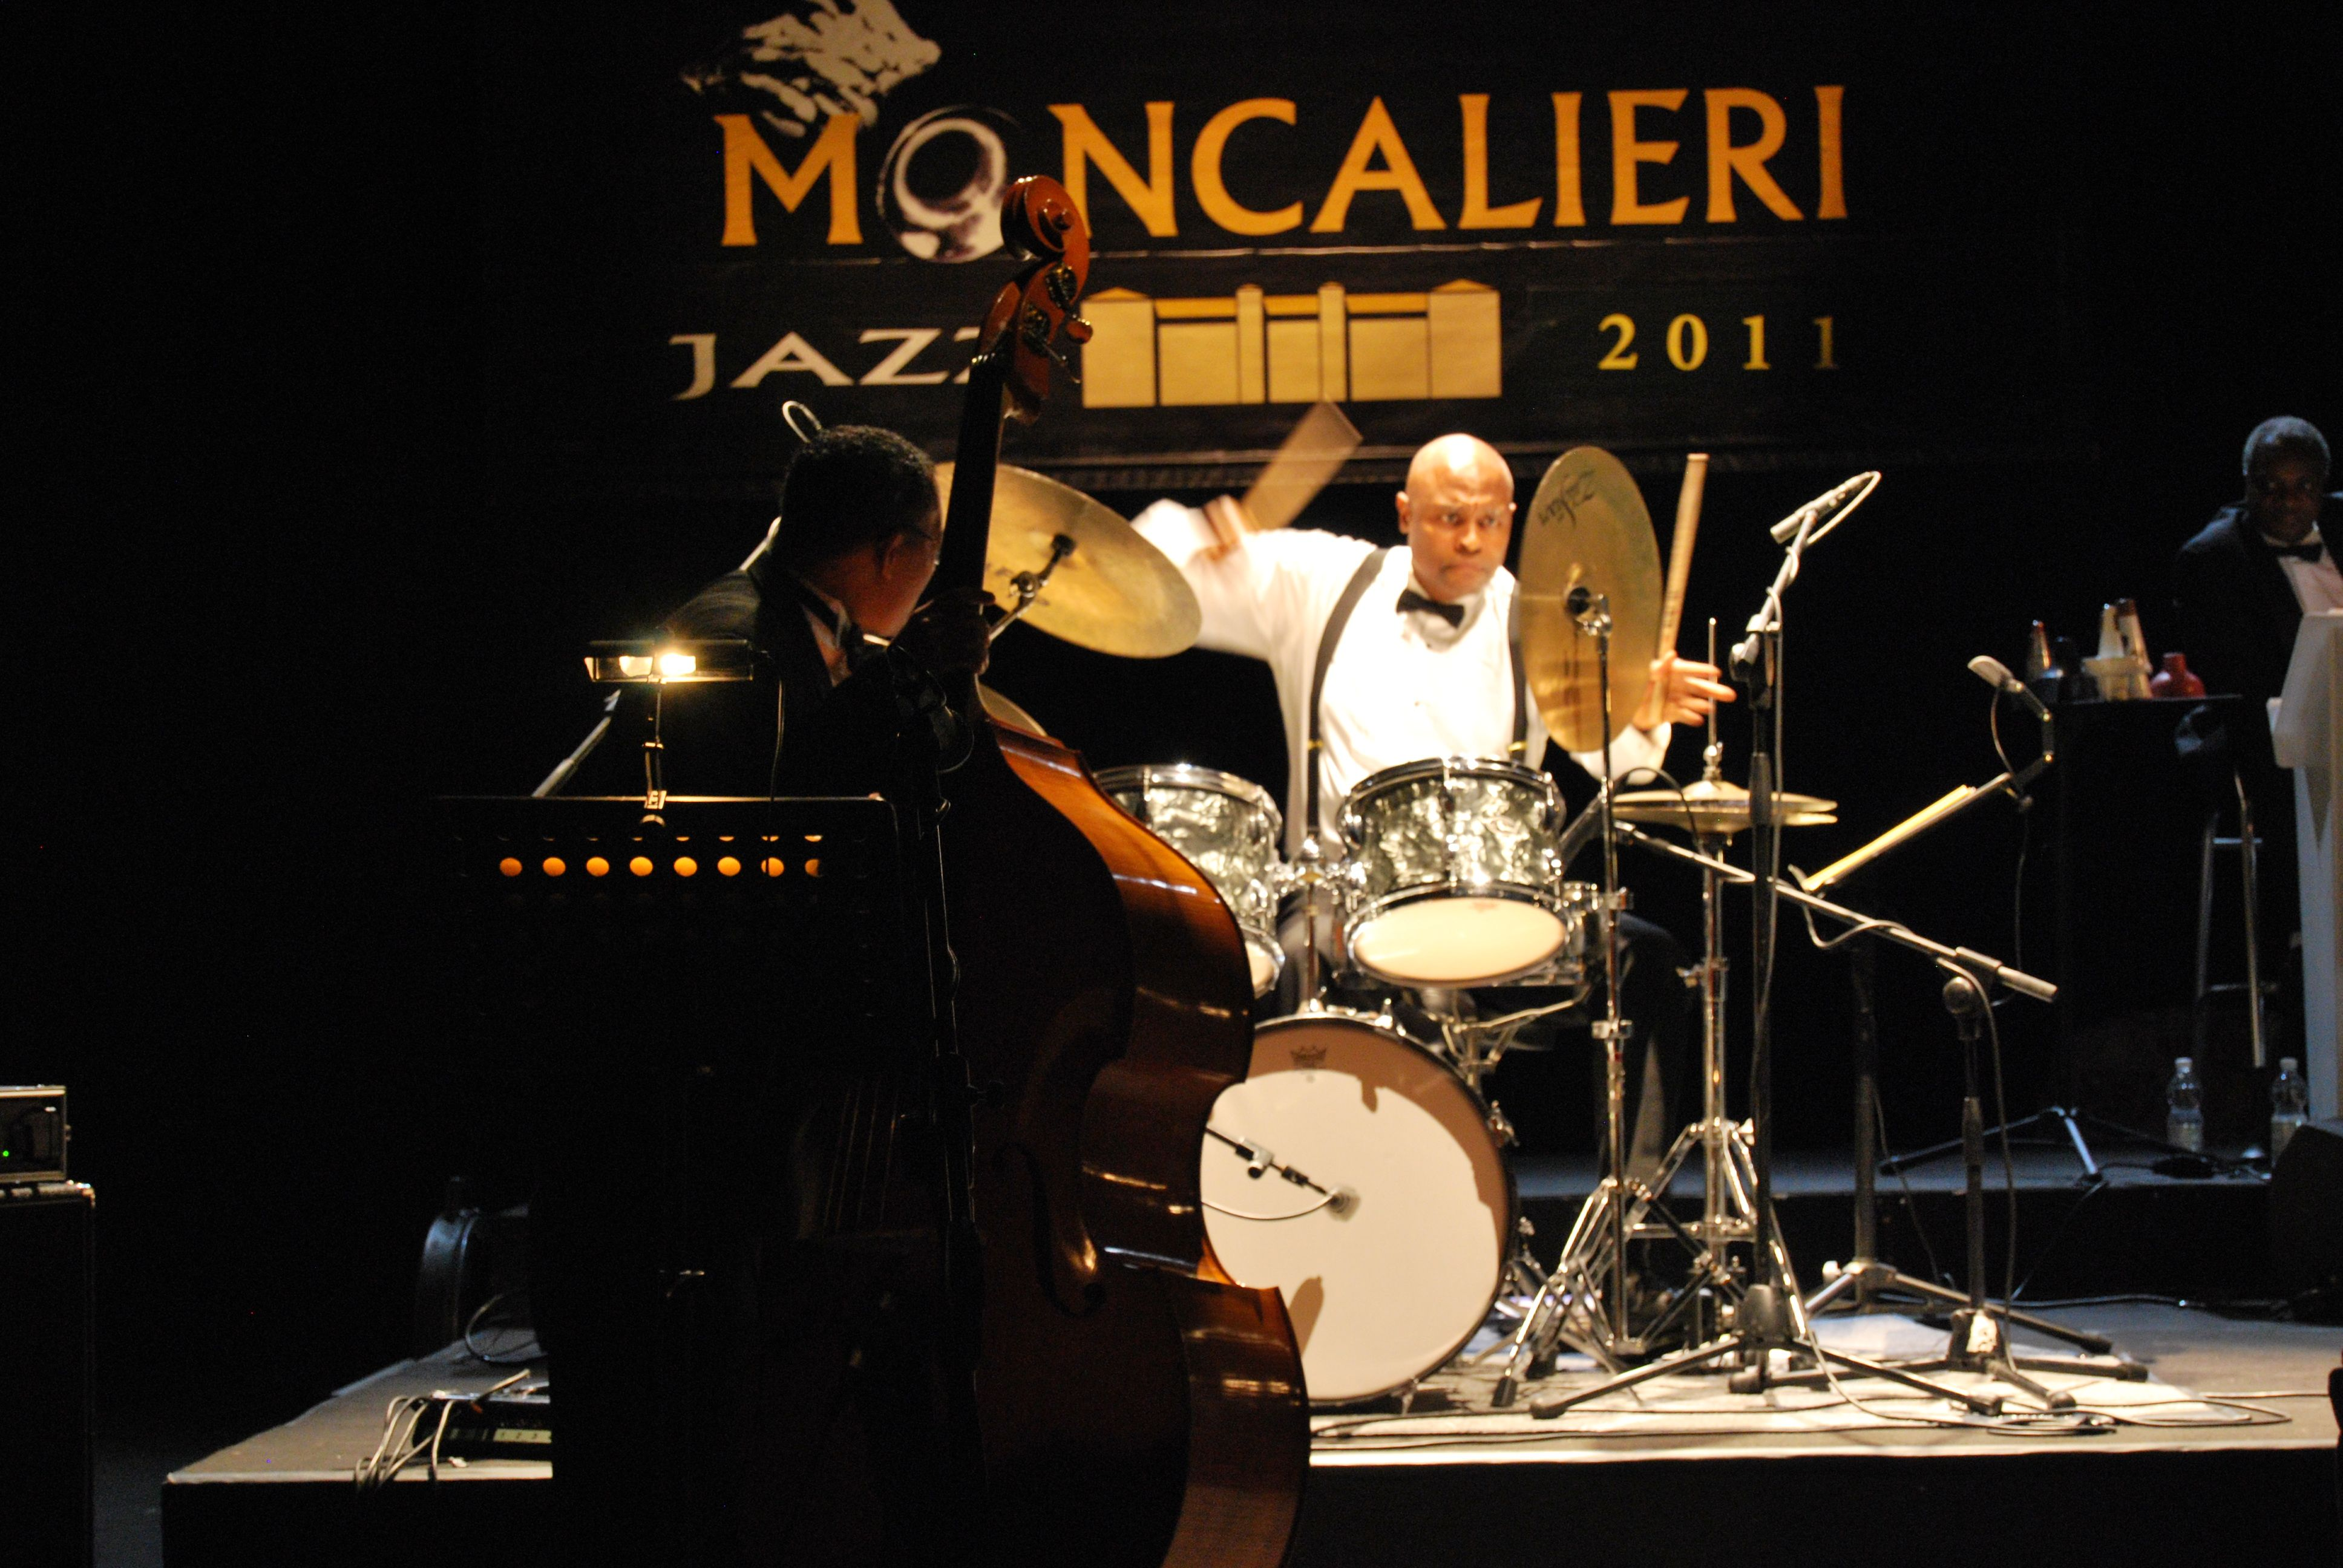 David with the Duke Ellington Orchestra in Italy